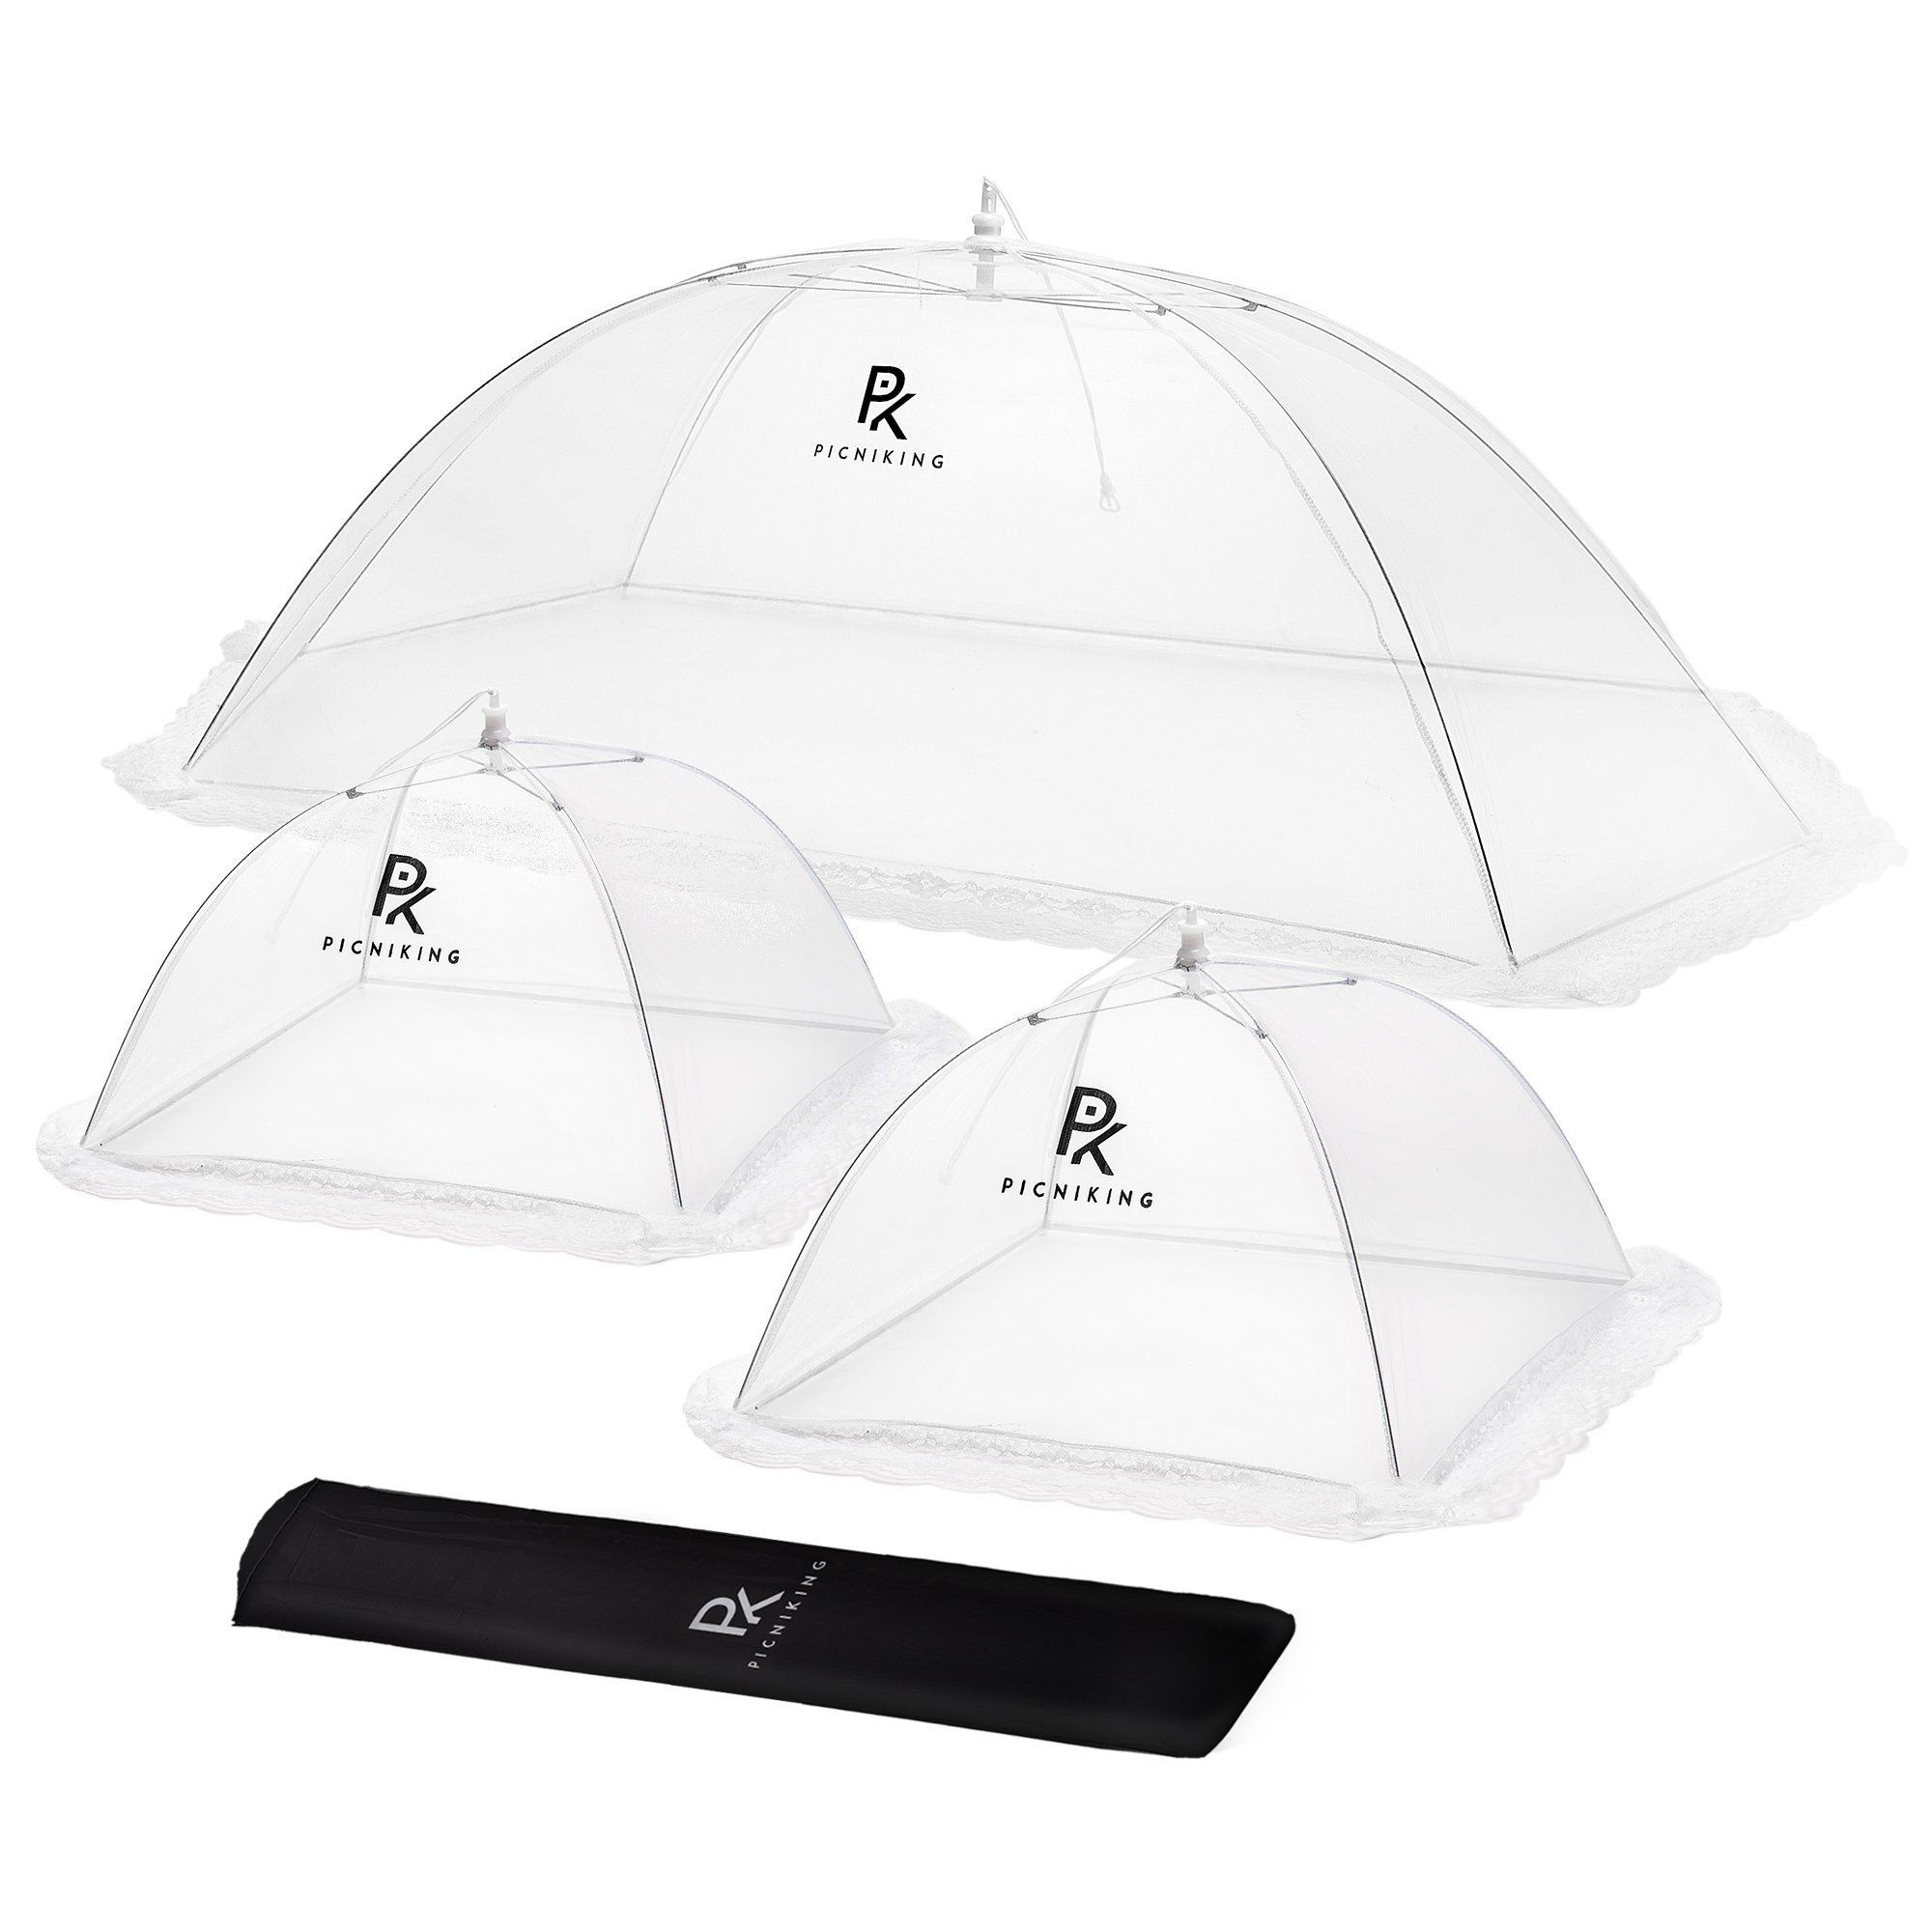 (3 Pack) PicniKing Mesh Food Covers/Food Tents | 1 XL (49x27x17) & 2 Standard (17x17x12) | Fine Screen | Upgraded Rods | Double Layer Skirt | Guaranteed Bug Protection